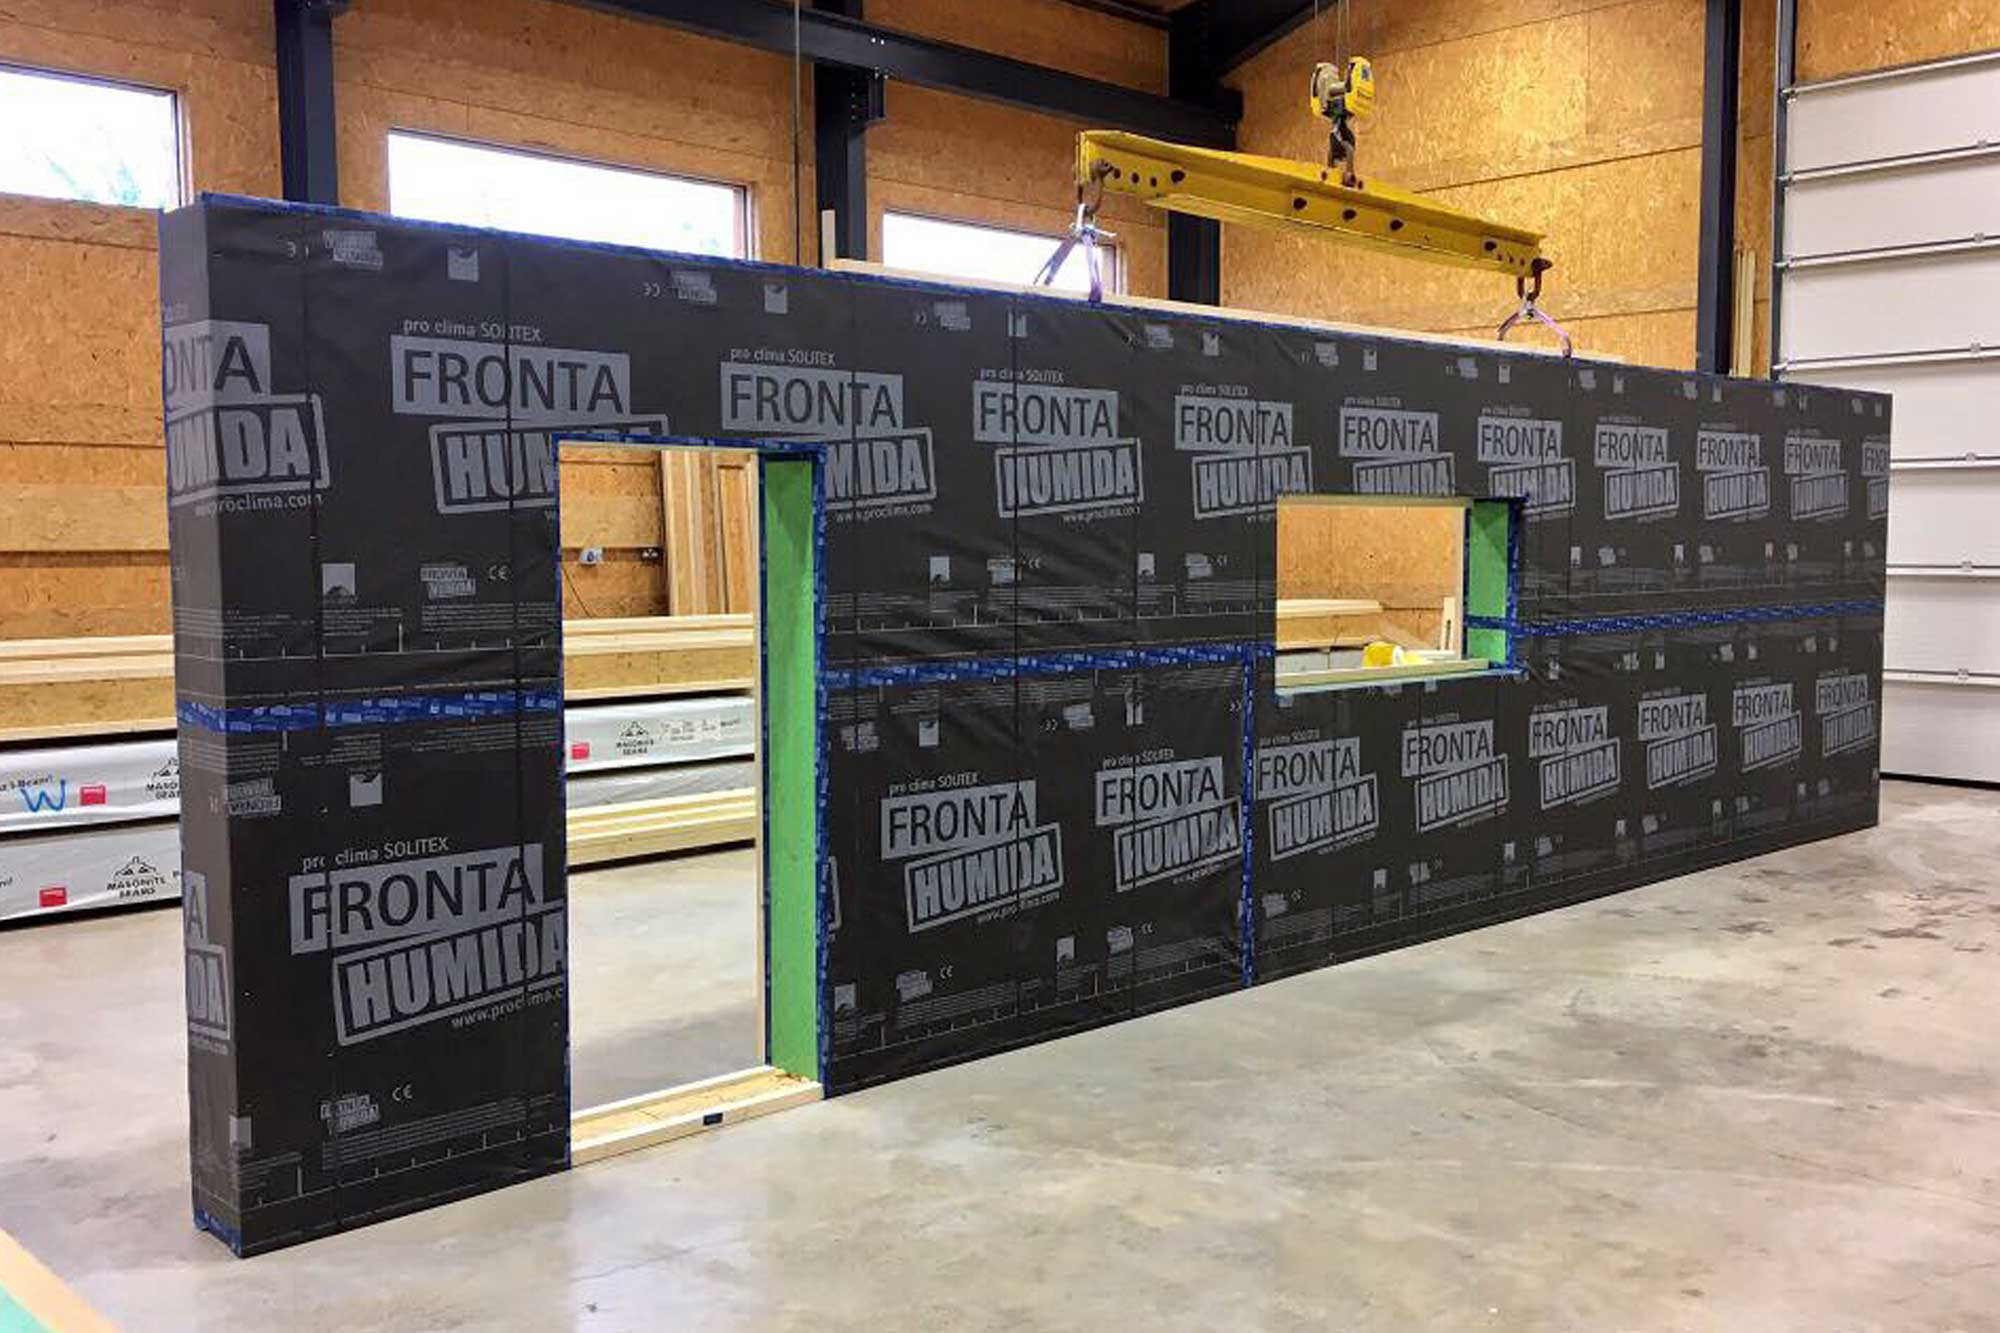 Low energy timber frame panel with fronta humida membrane